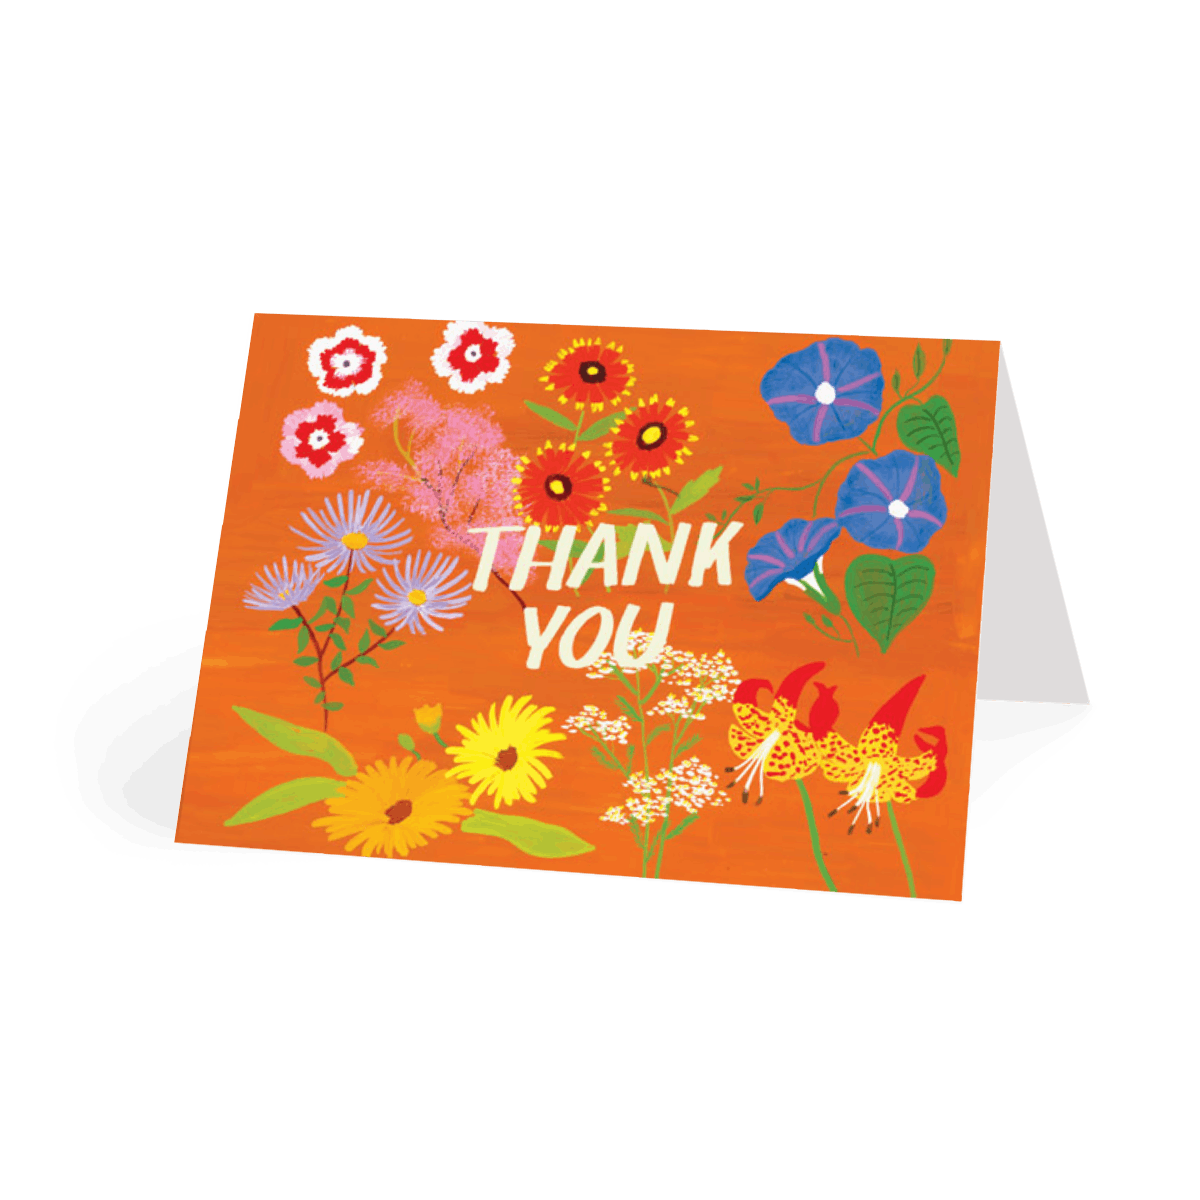 Https%3a%2f%2fwww.papier.com%2fproduct image%2f33625%2f14%2fwild flower thank you 8397 front 1542297750.png?ixlib=rb 1.1